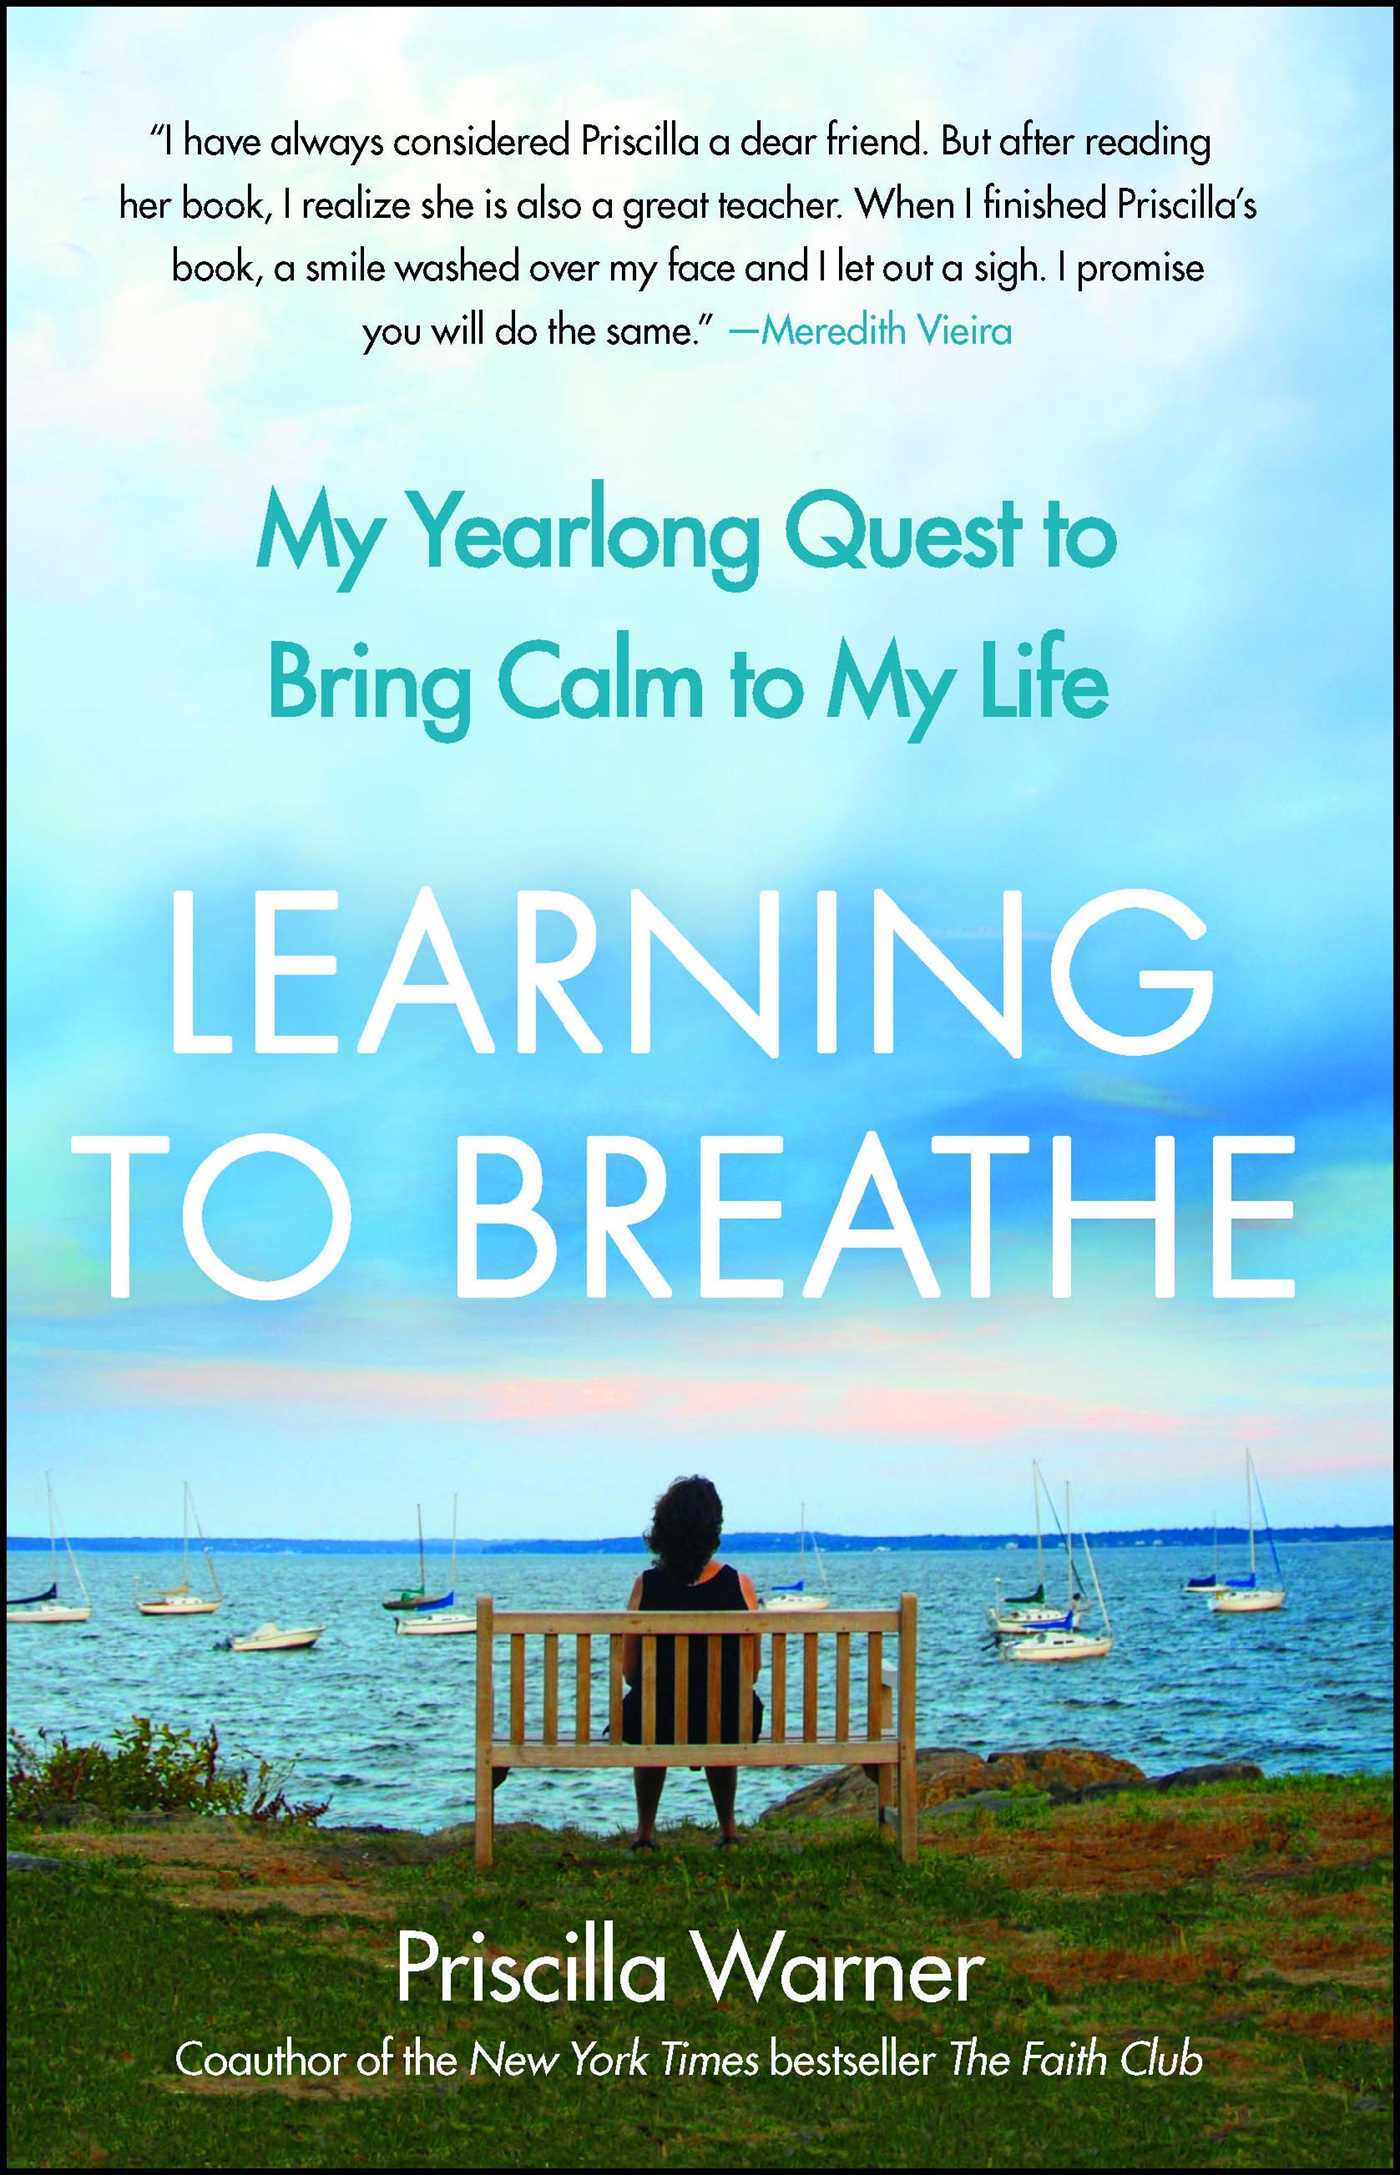 Learning-to-breathe-9781439181089_hr